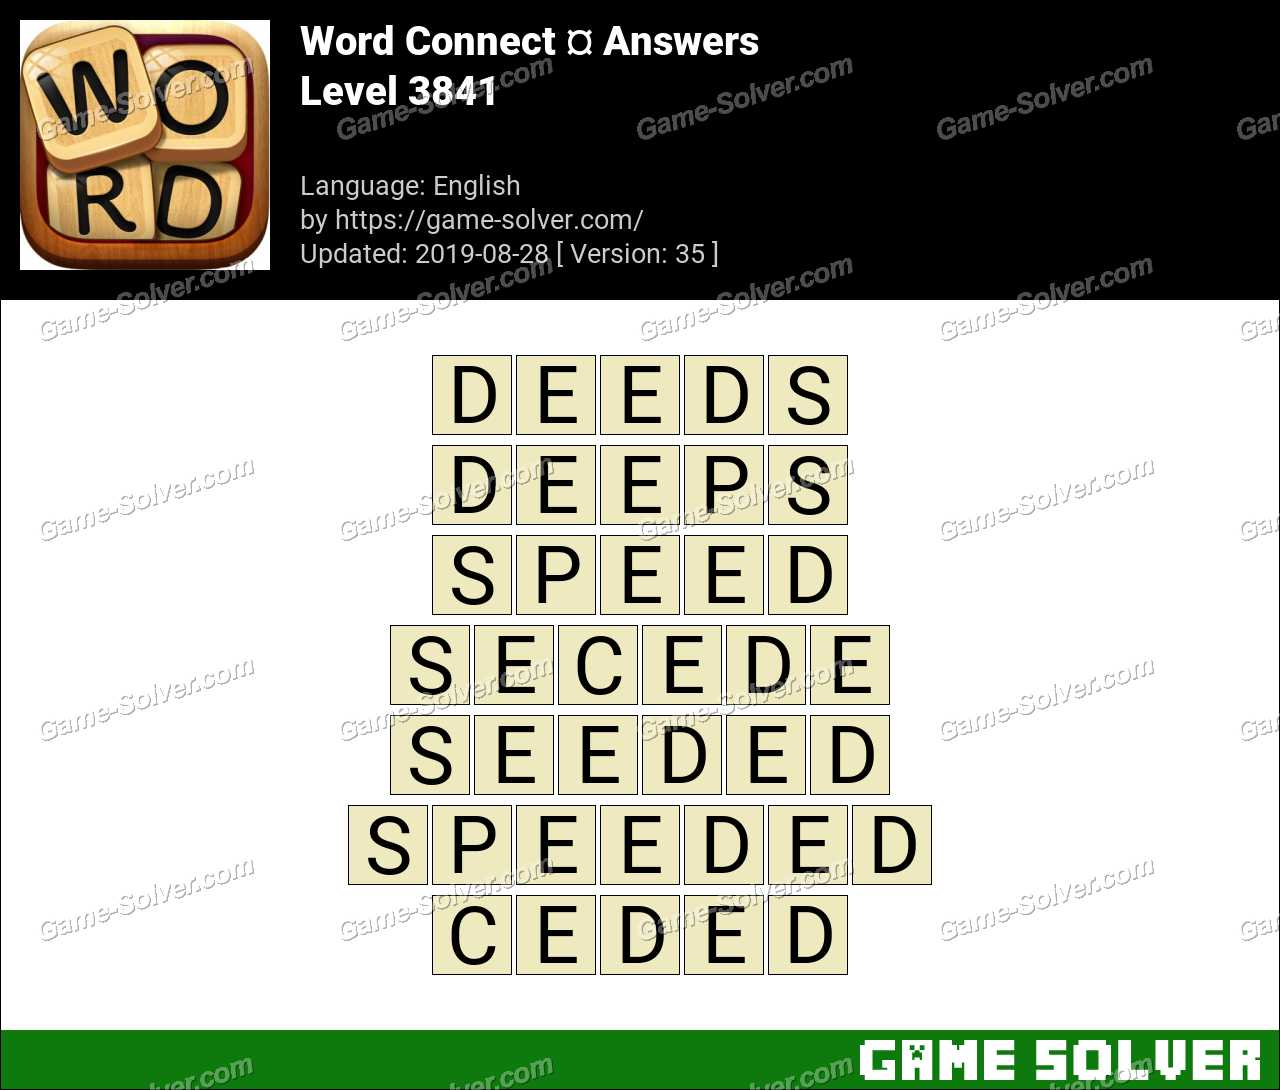 Word Connect Level 3841 Answers